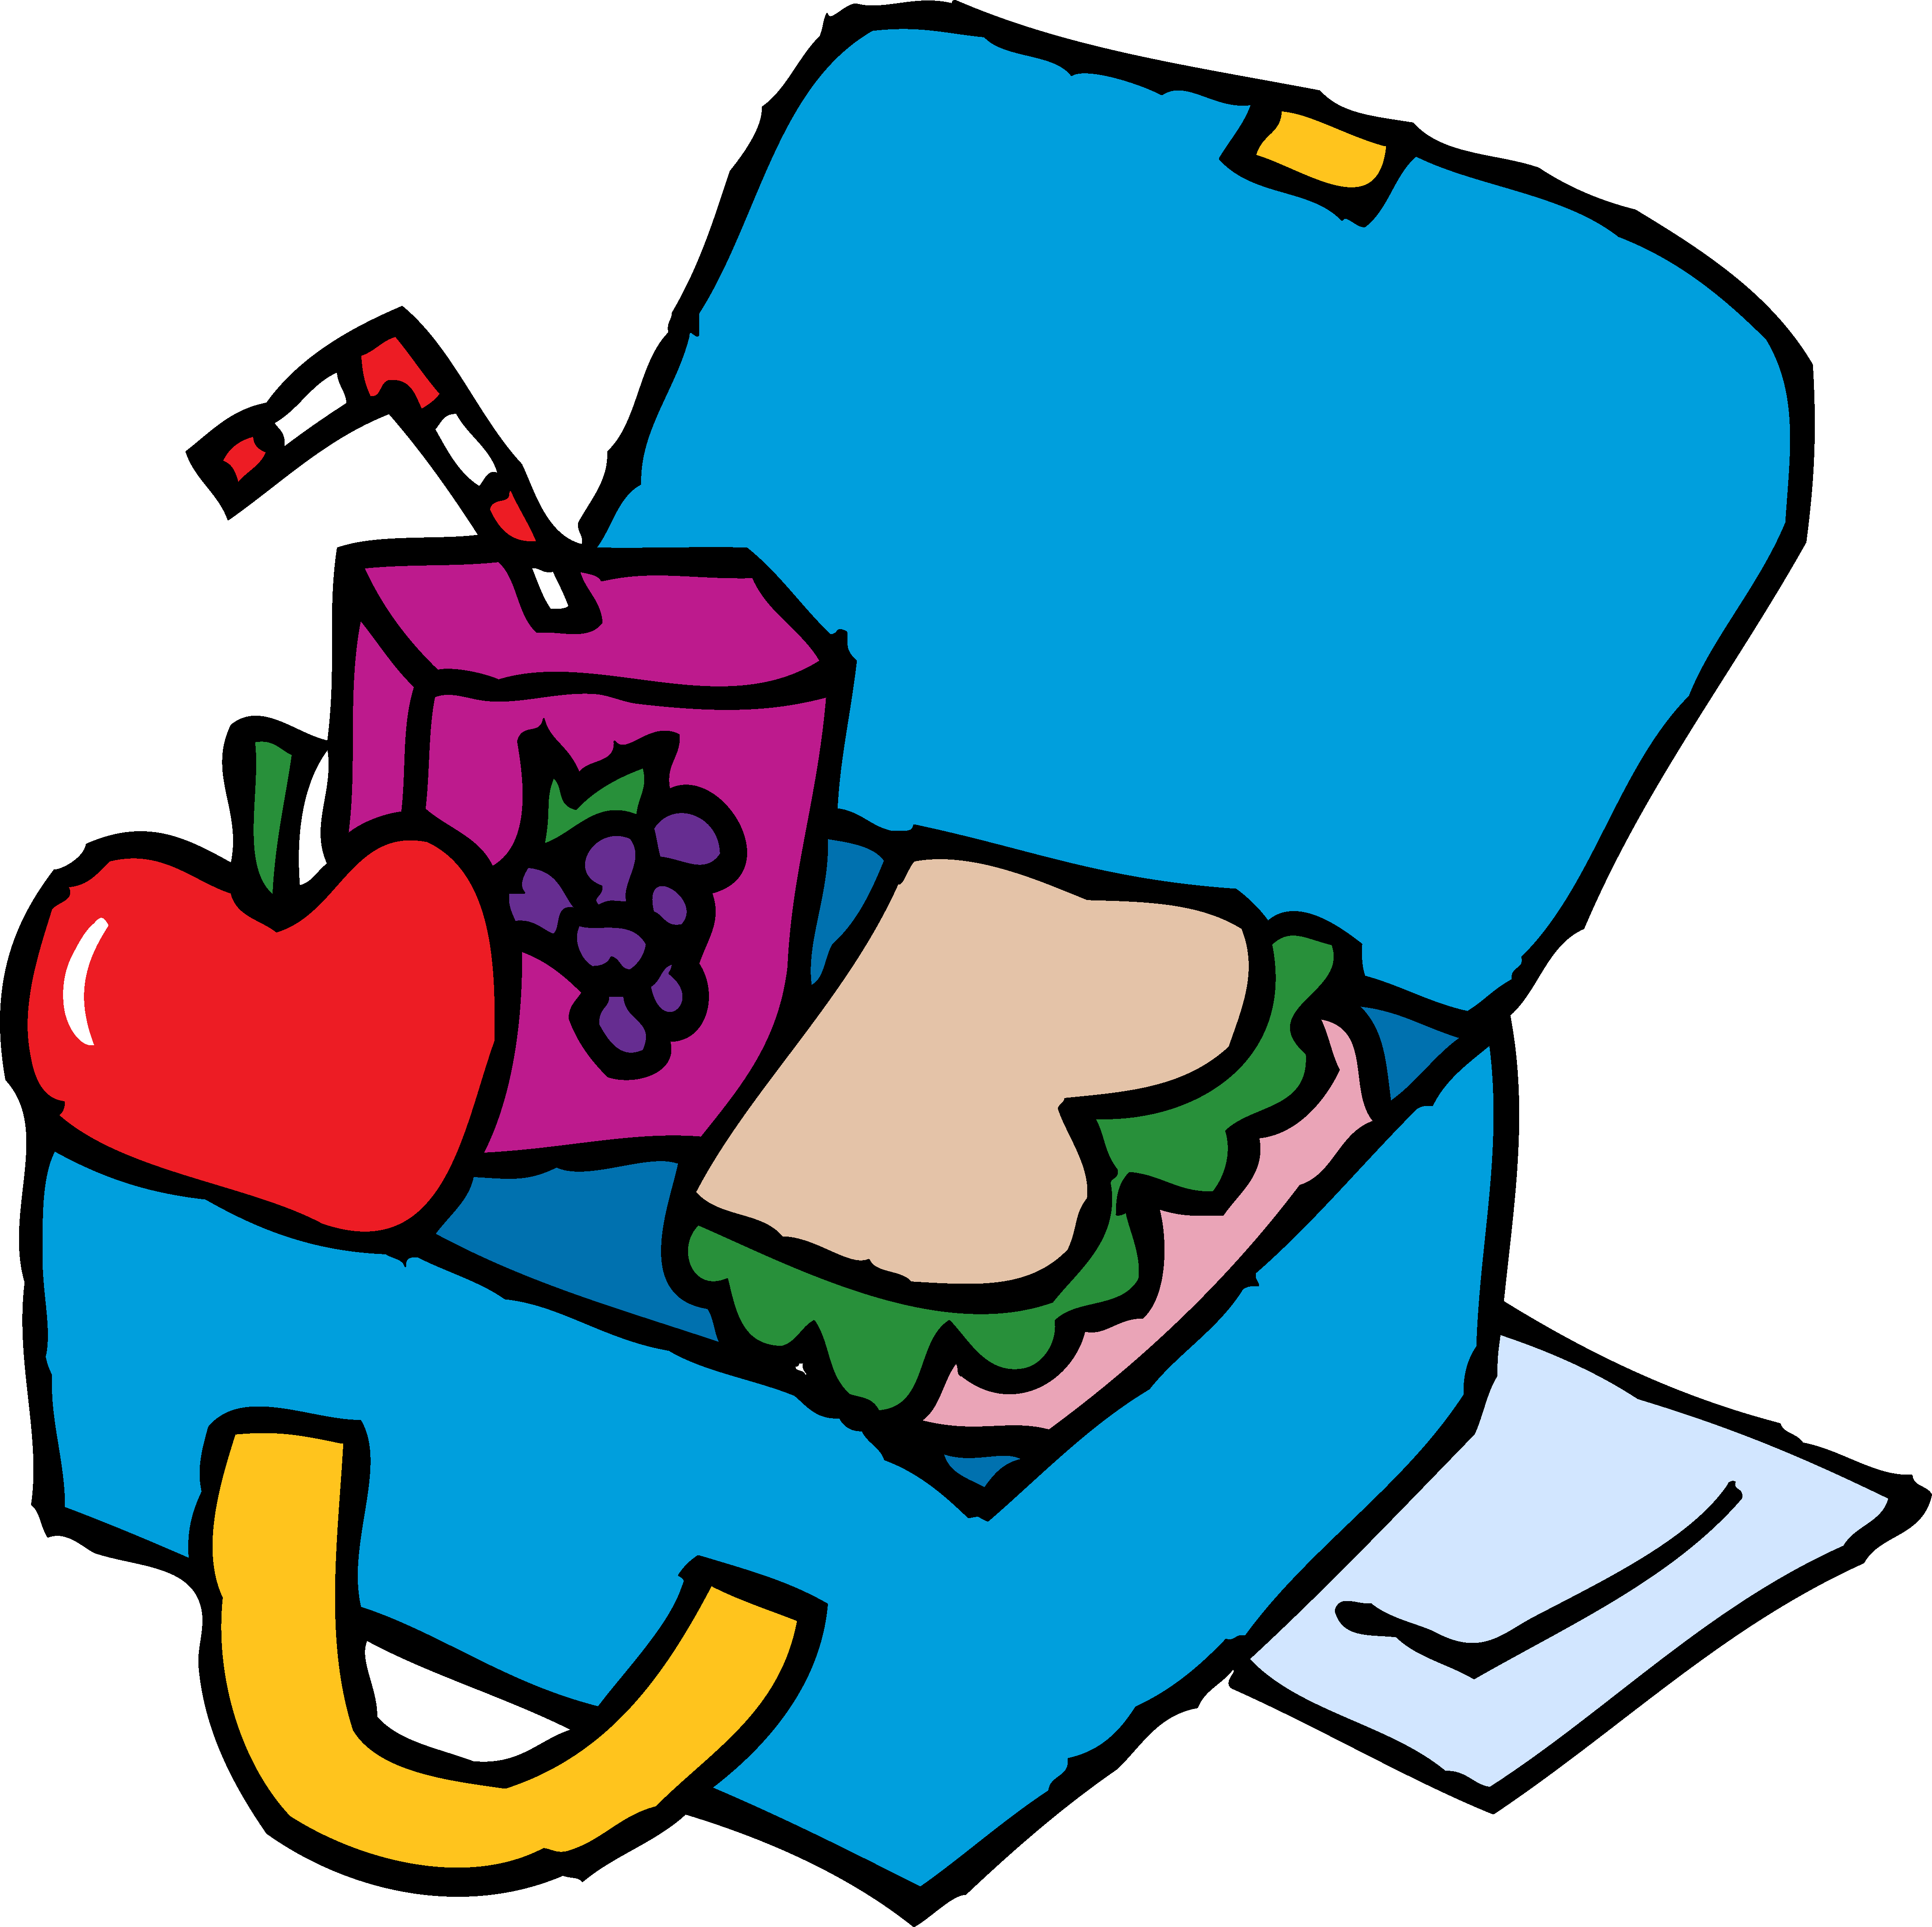 clipart transparent stock Lunch clipart breaktime. Snack lunchtime free on.